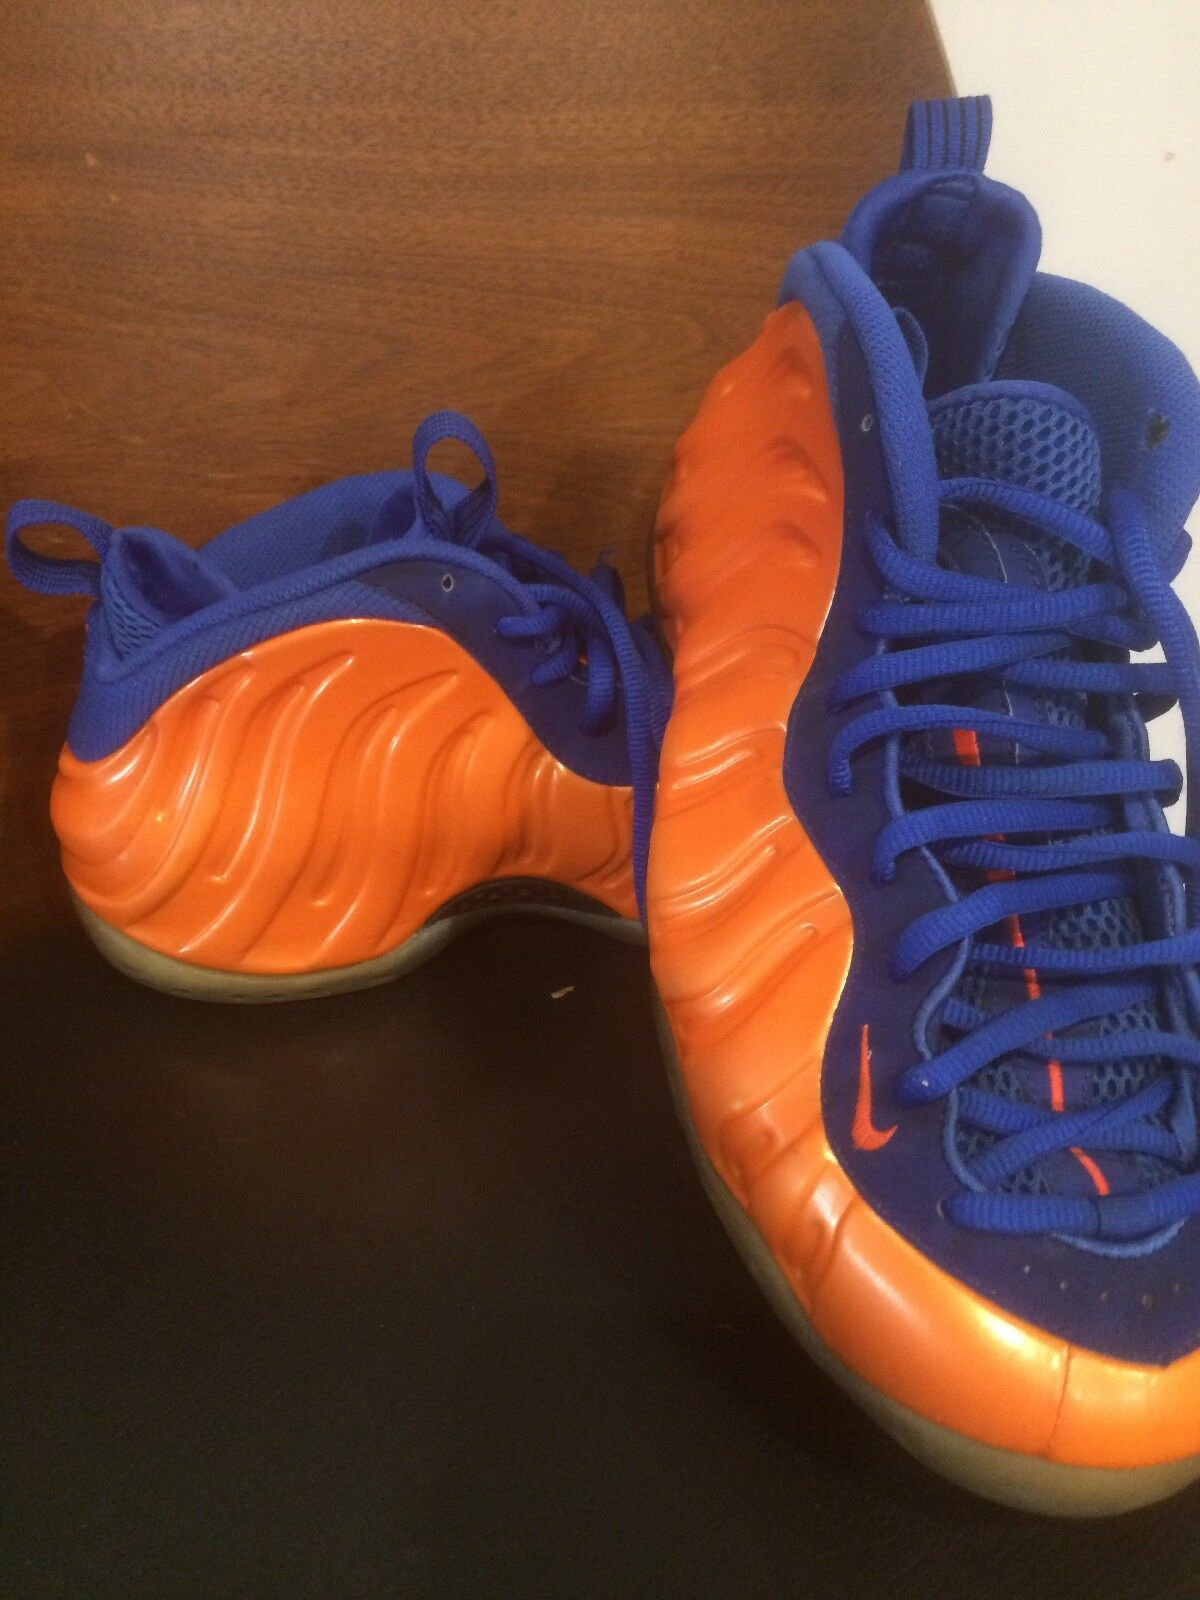 Nike air foamposite size 12 Gently Used